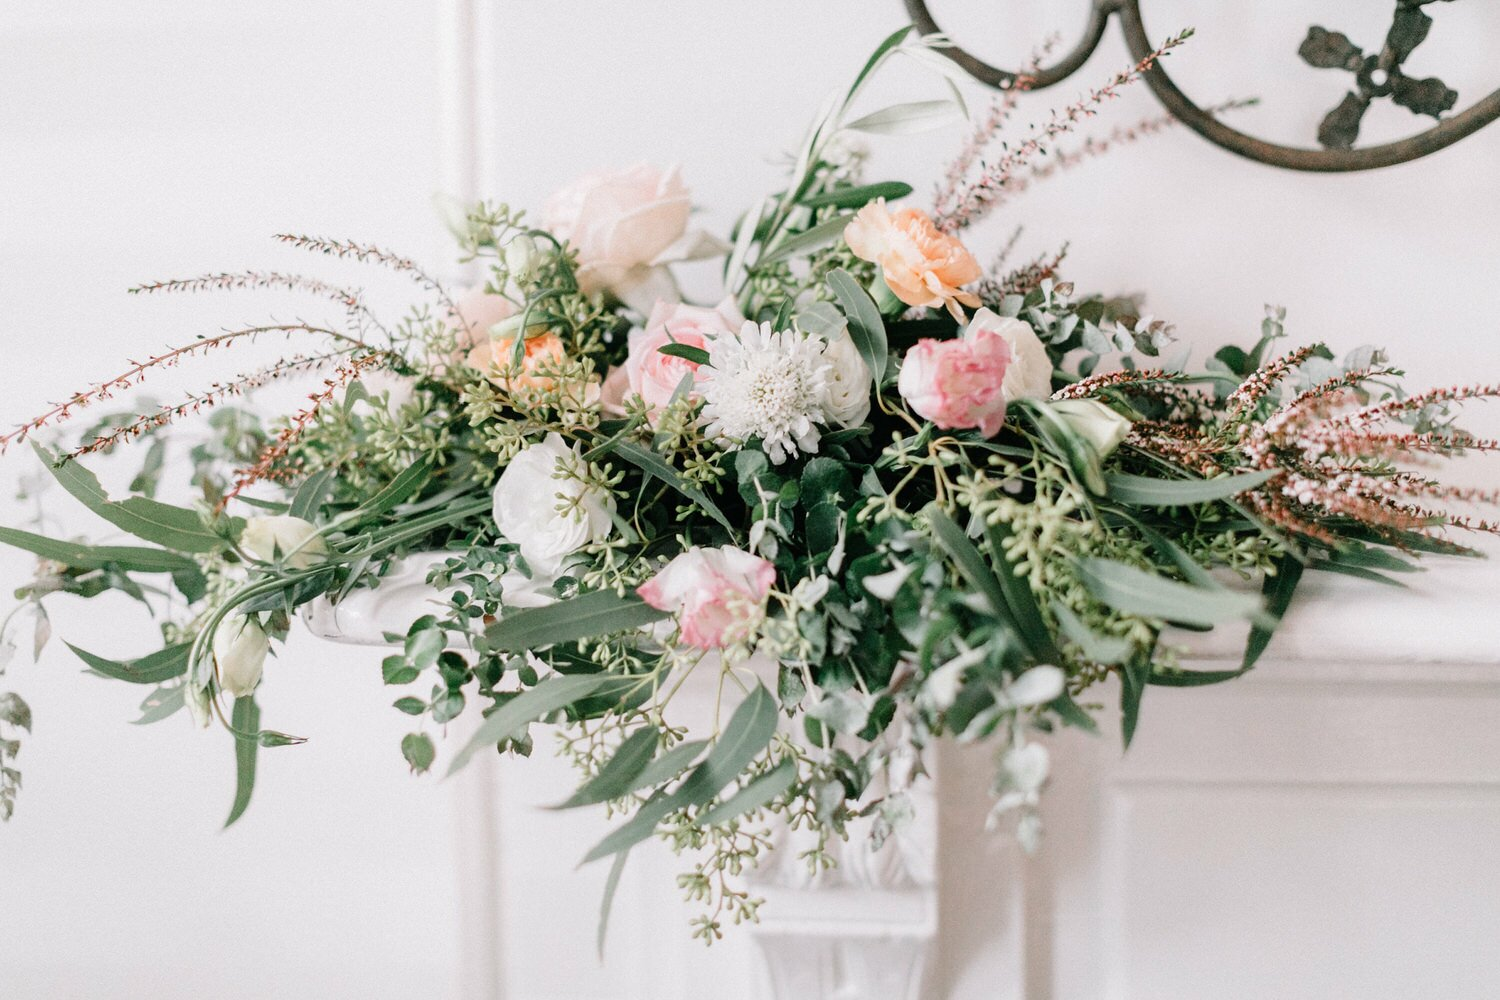 sydney-wedding-flower-packages-cheap-price-reception-3